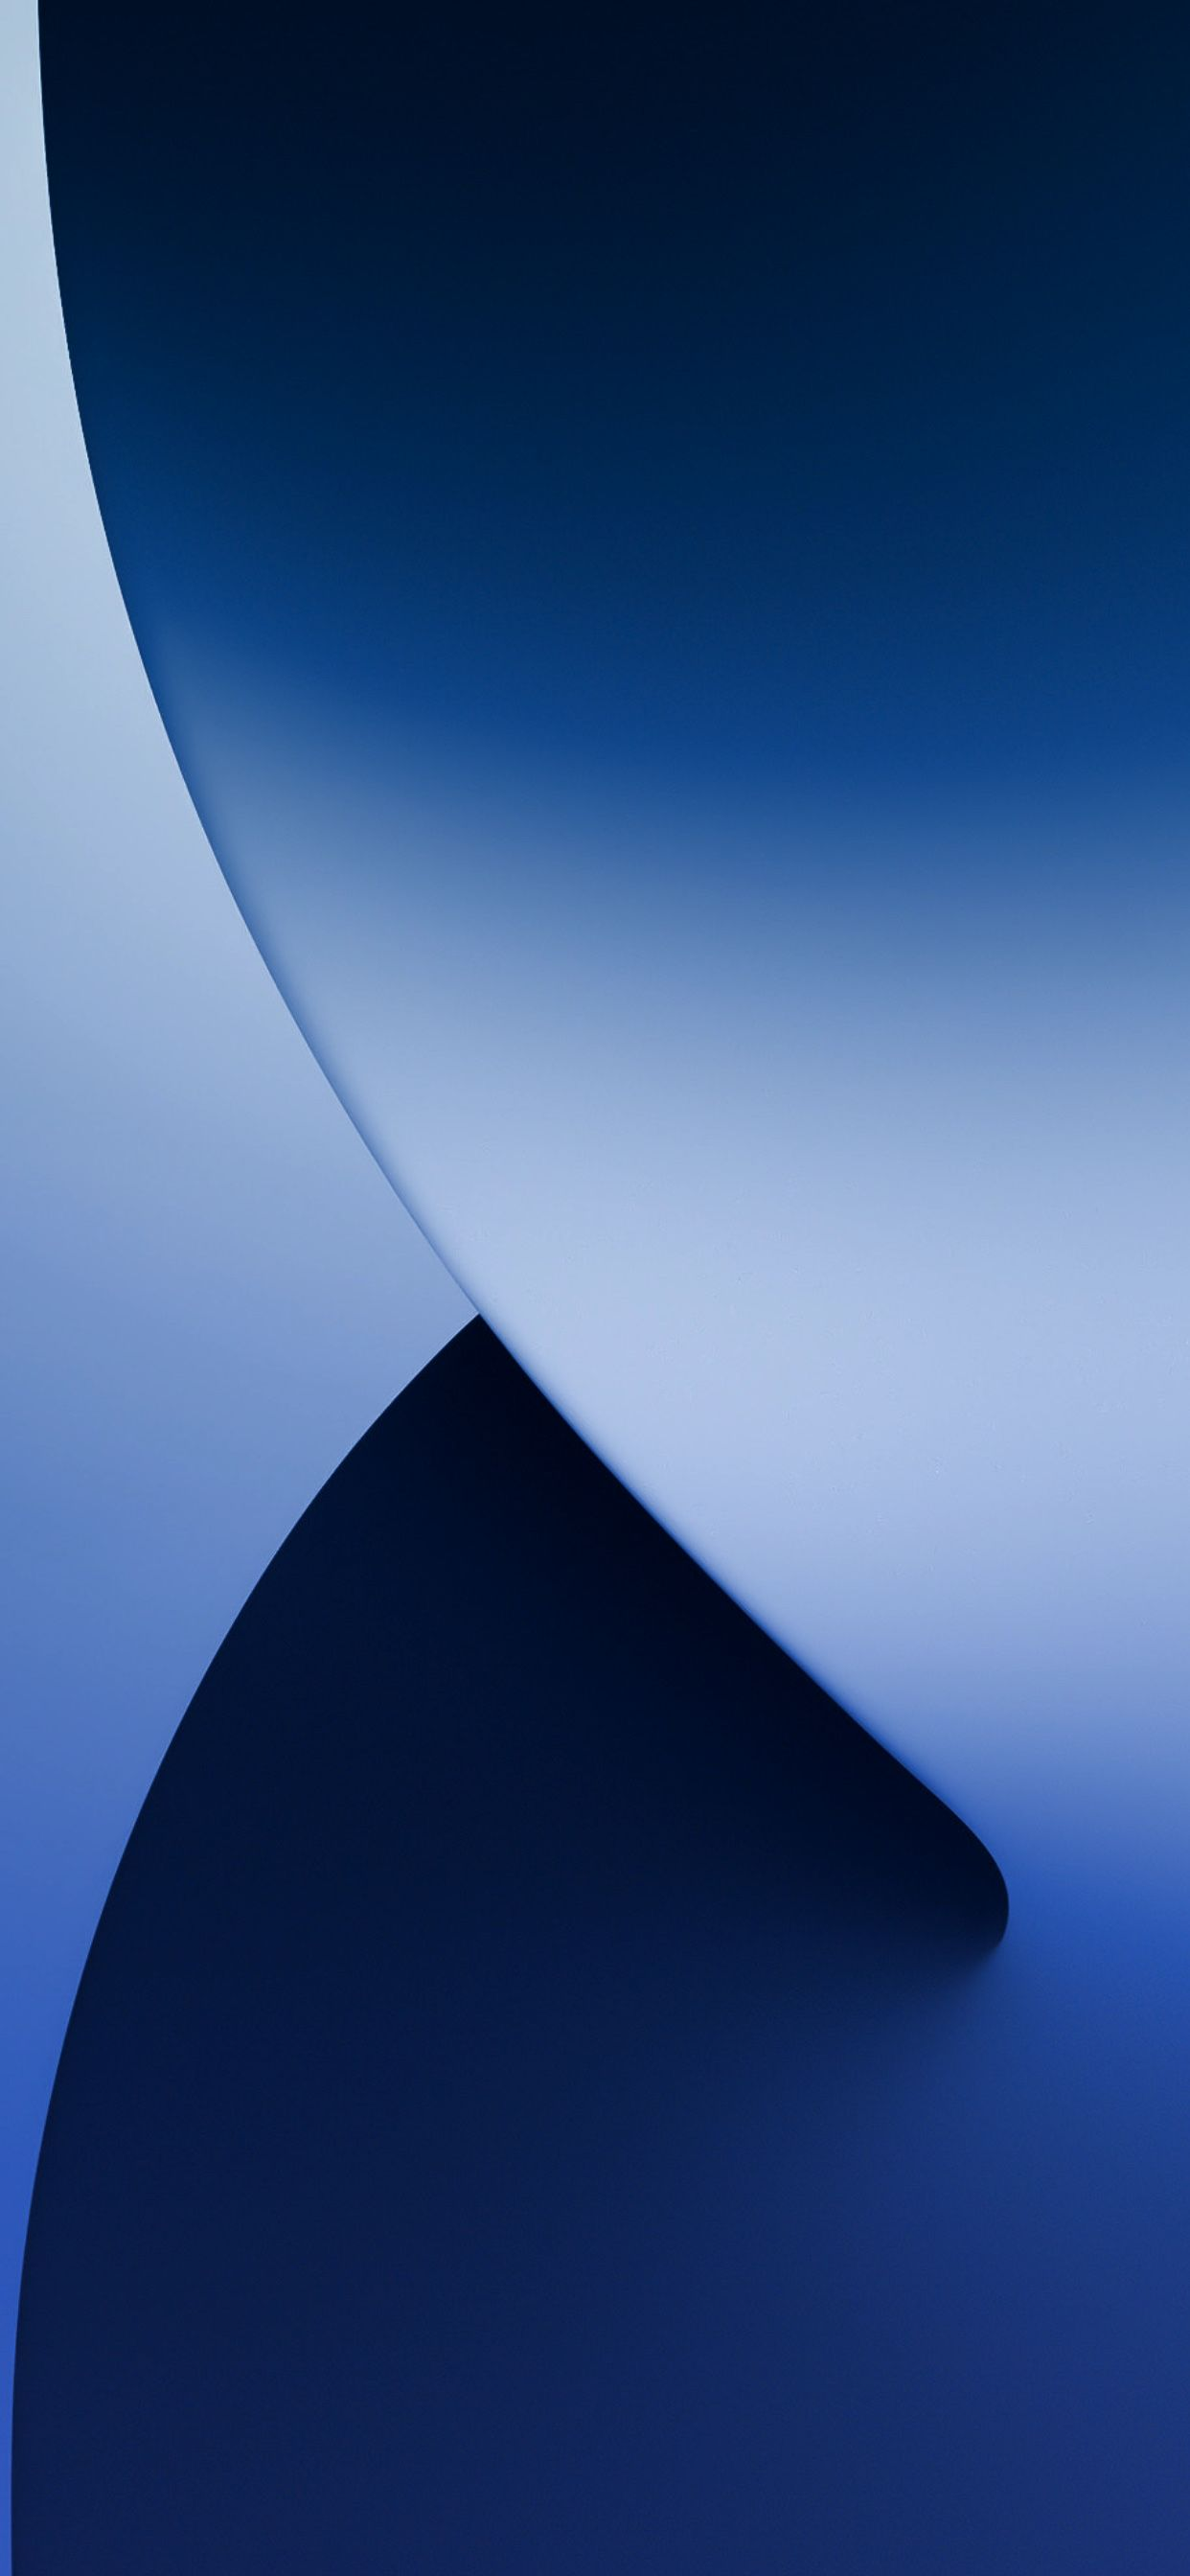 Ios 14 Wallpaper In 2020 Abstract Iphone Wallpaper Ios 14 Wallpaper Blue Wallpaper Iphone